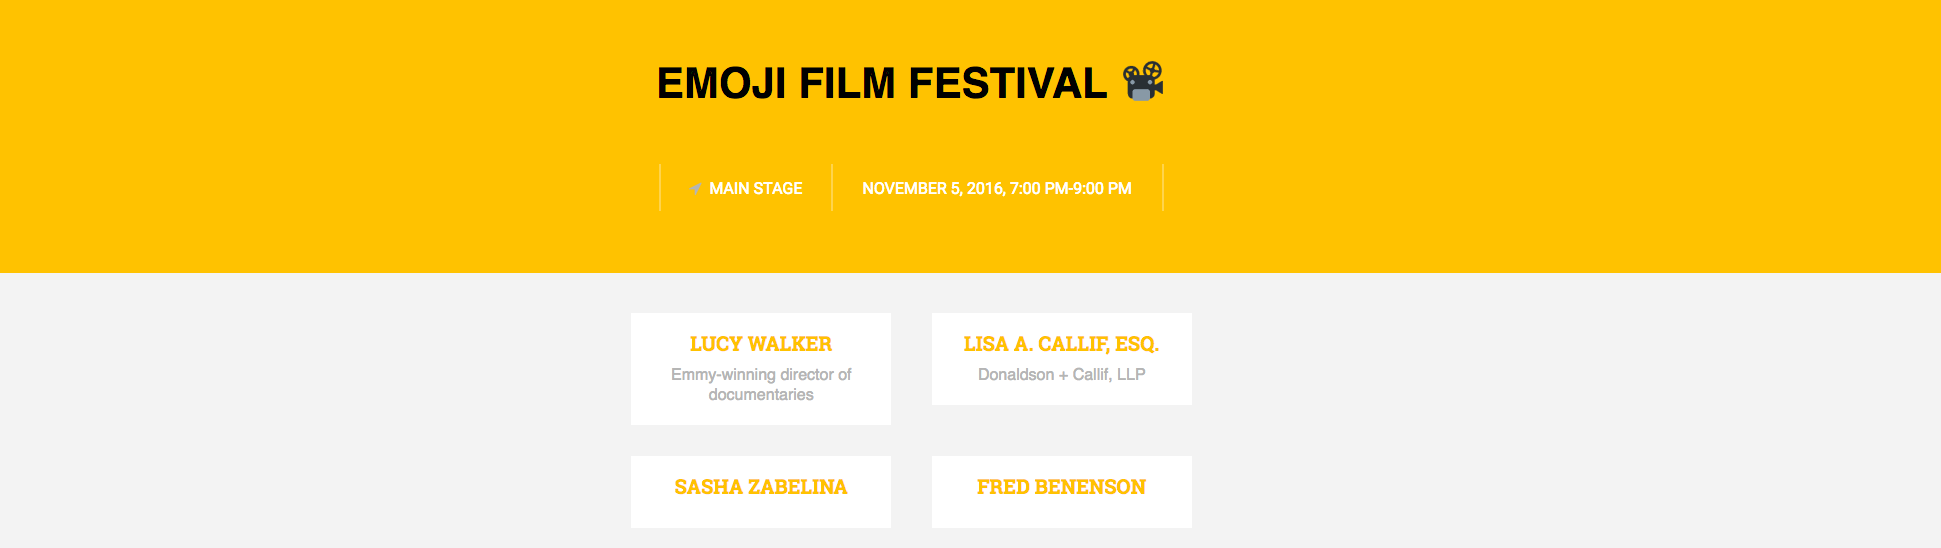 Because of the project, I was invited to participate at the first  emojicon  and be on the panel of speakers for the Emoji Film Festival in San Francisco.